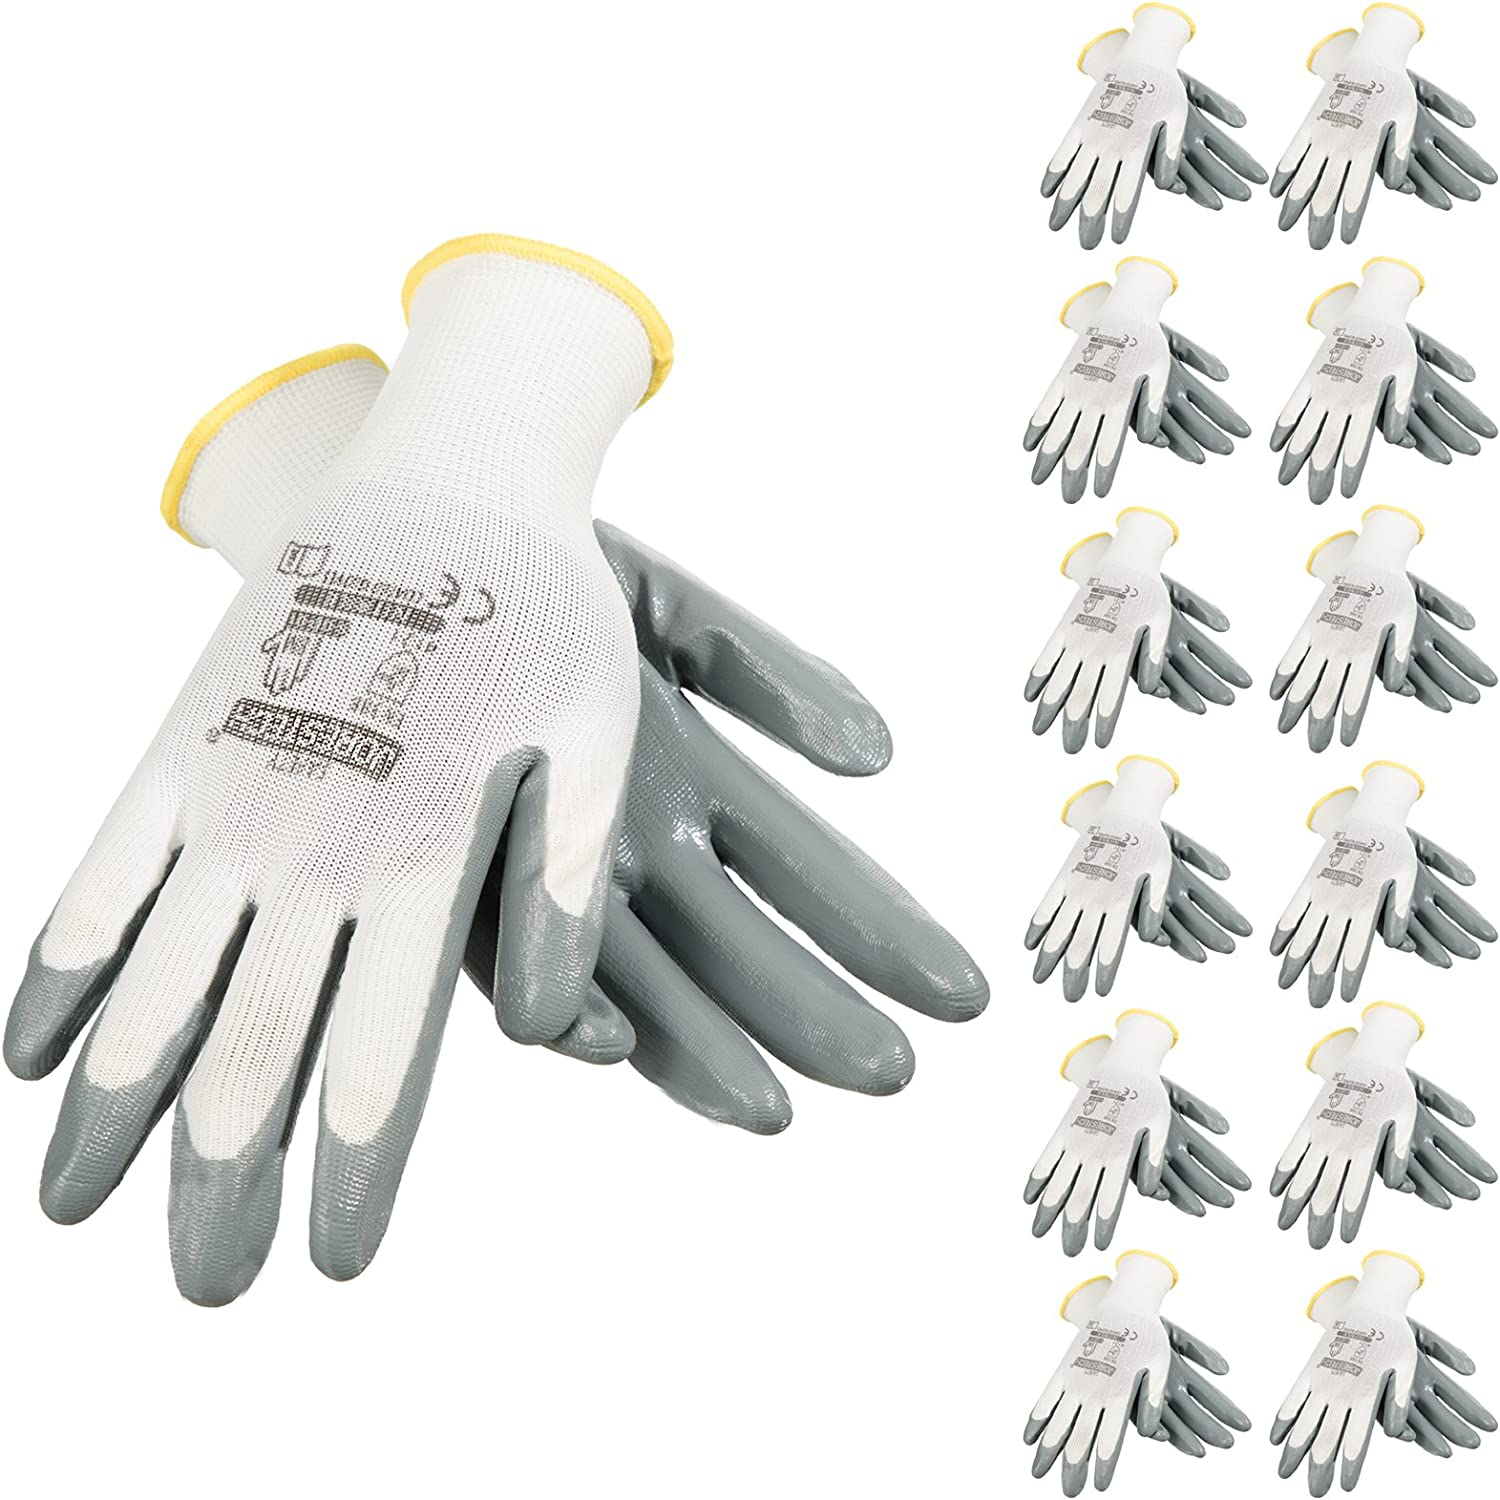 JORESTECH Safety Work Gloves White Polyester Knitted Fiber with Grey Nitrile Coating Pack of 12 GD-01 (Size 9-L)